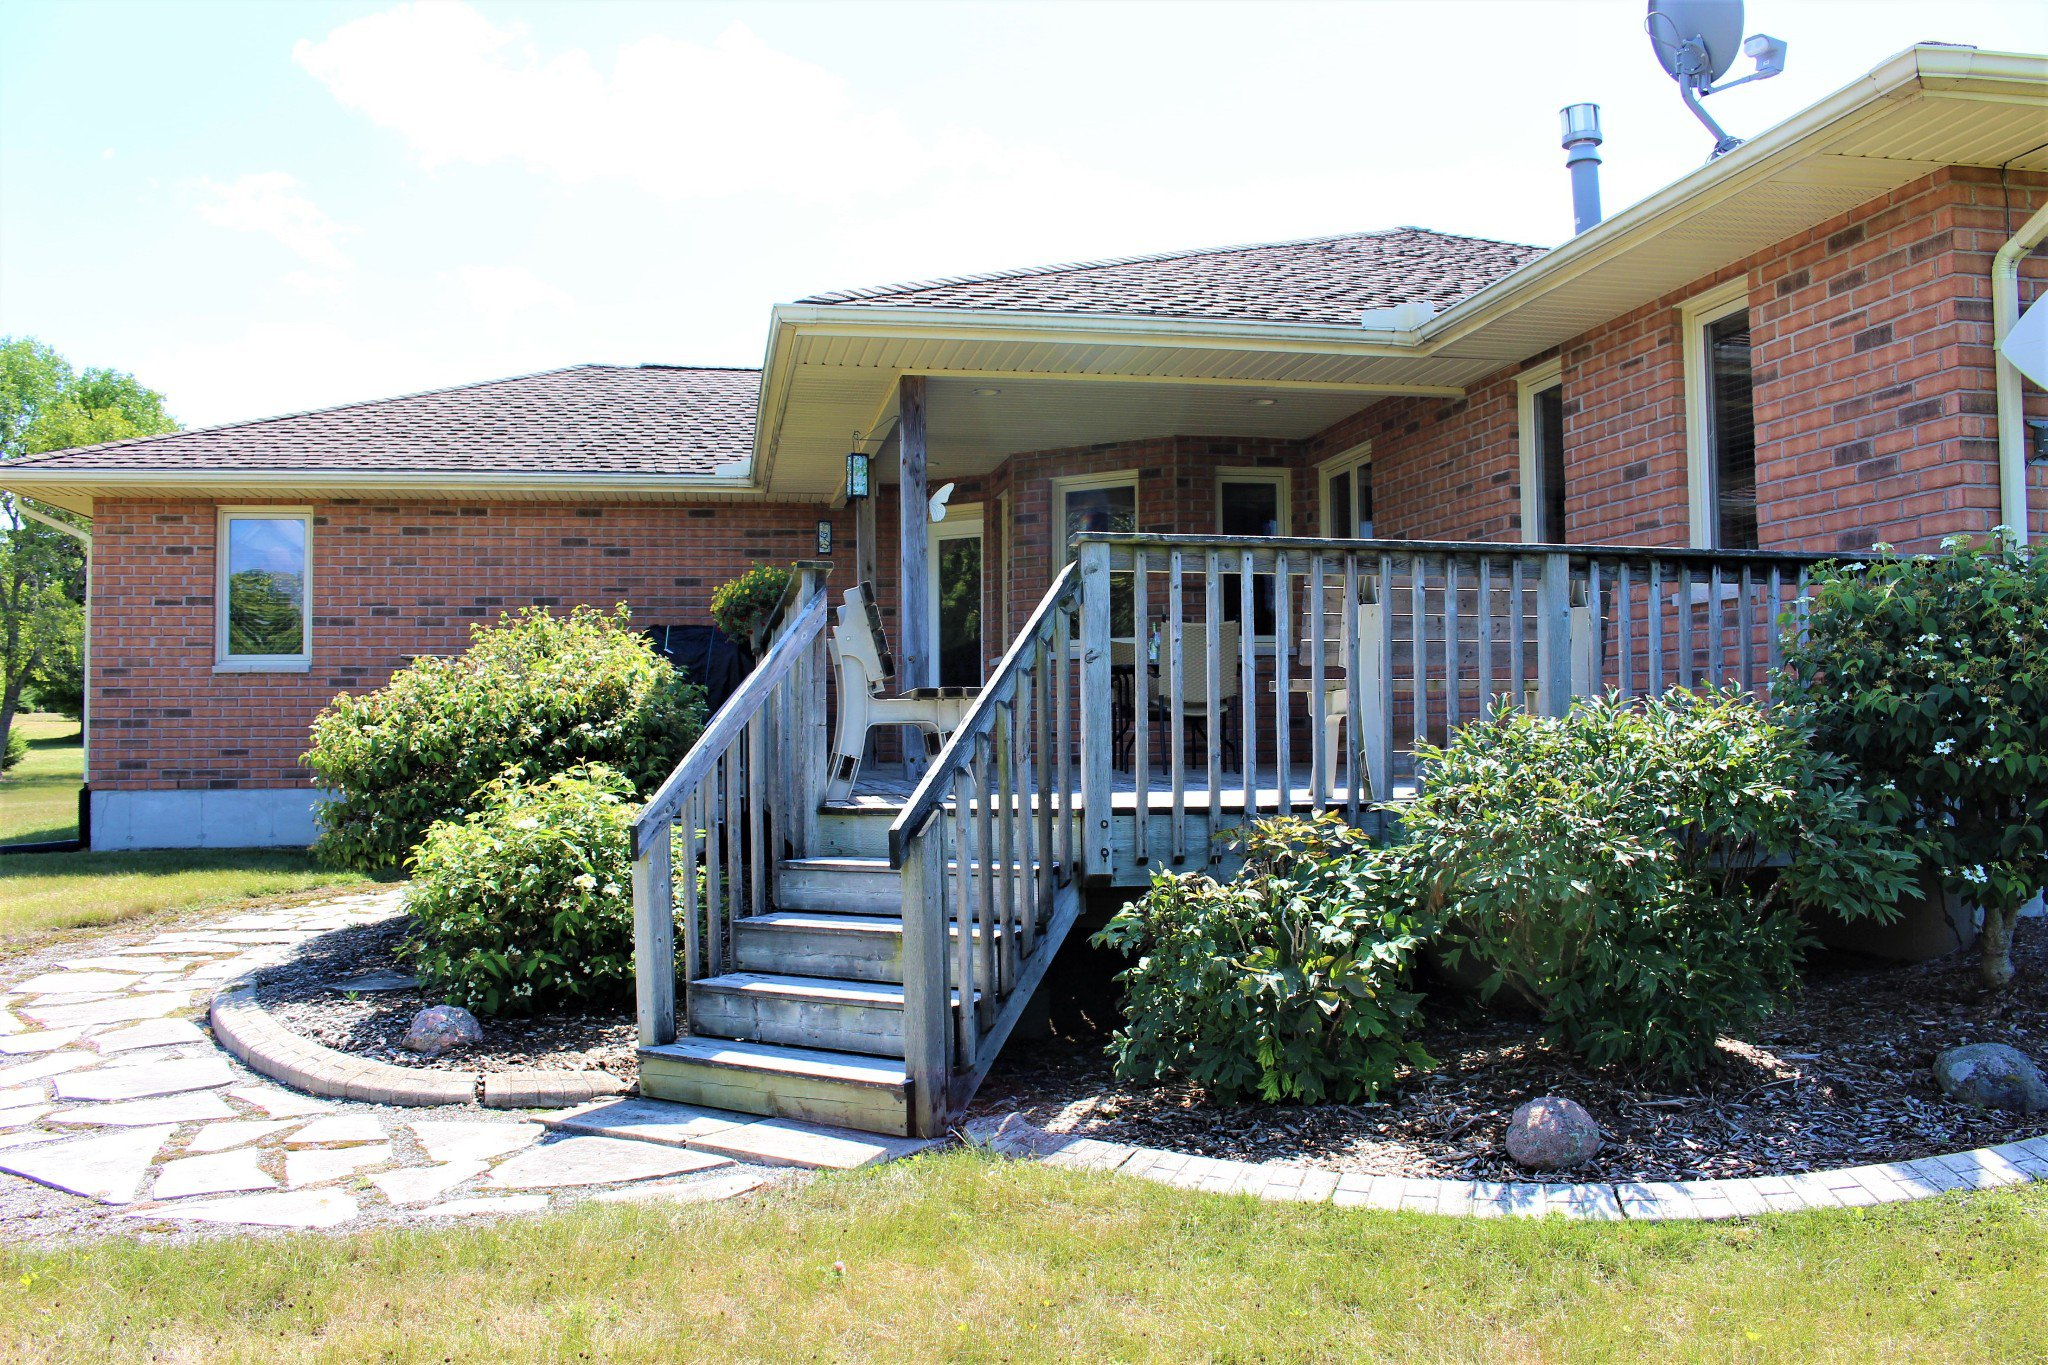 Photo 43: Photos: 159 Nawautin Drive in Grafton: Residential Detached for sale : MLS®# 40012652